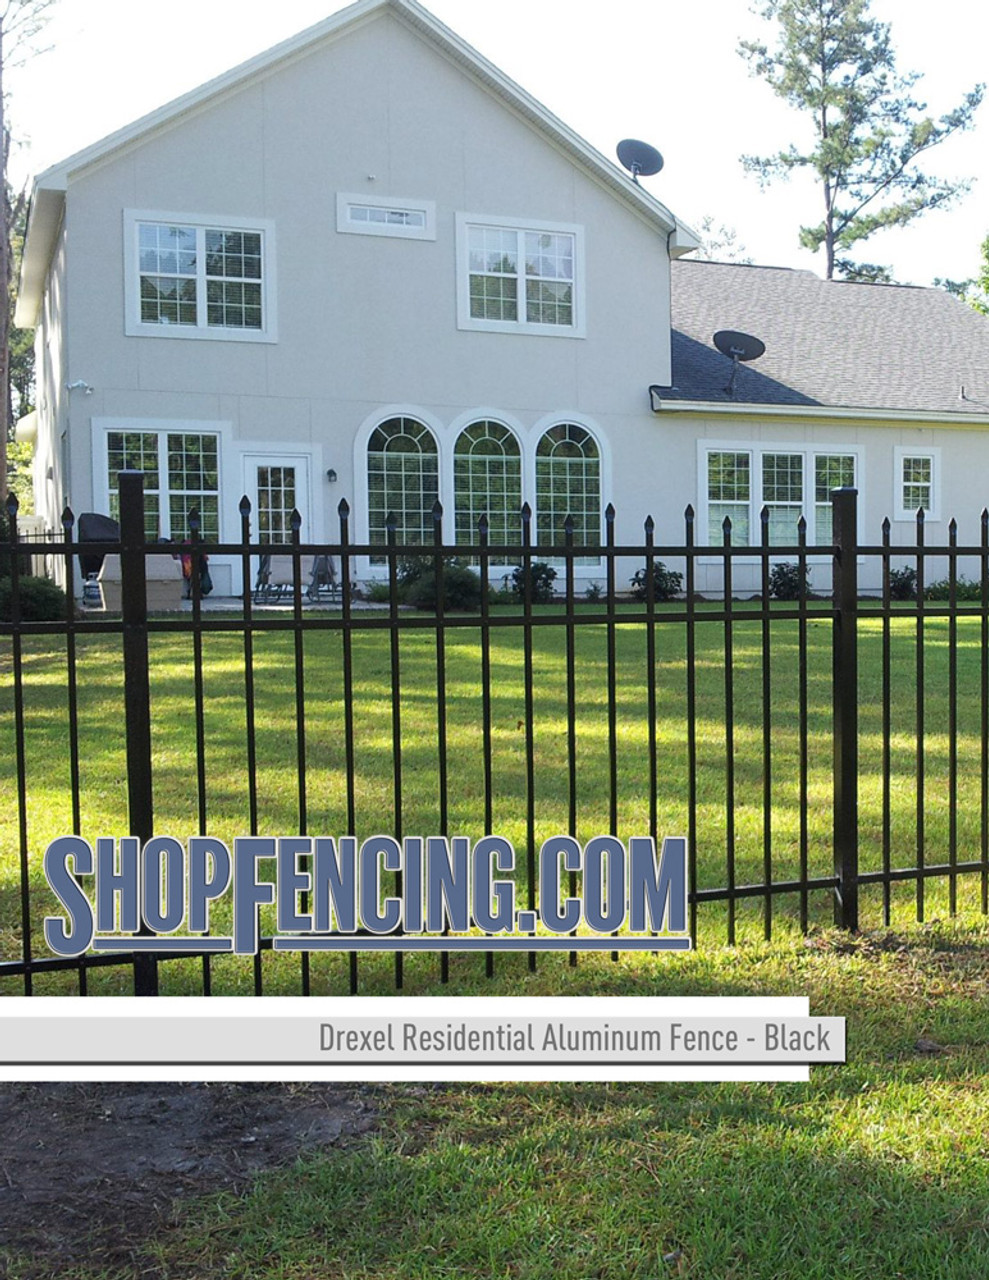 Black Drexel Residential Aluminum Fencing From ShopFencing.com